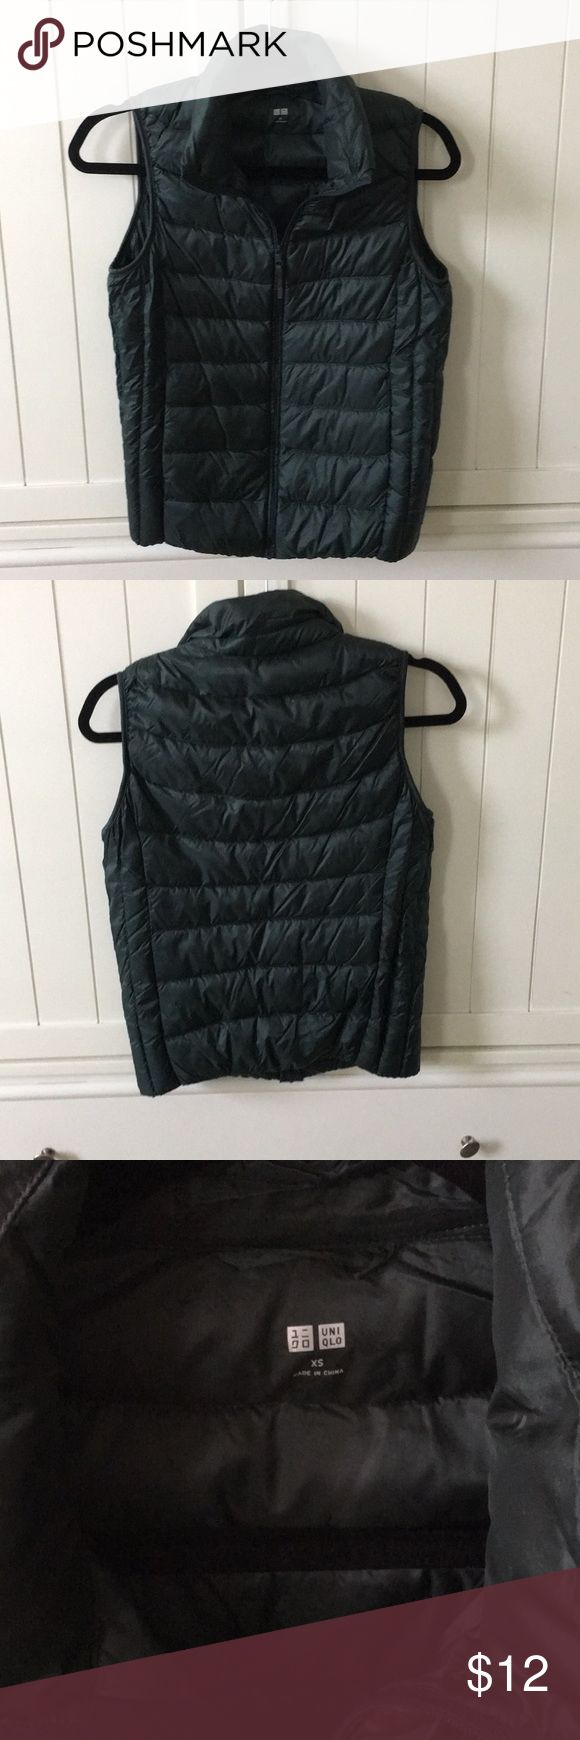 Uniqlo Dark Green Vest Uniqlo Dark Green Vest.  Worn once.  Perfect for this time of year for layering.  90% down filling.  Women's size xs. Uniqlo Jackets & Coats Vests